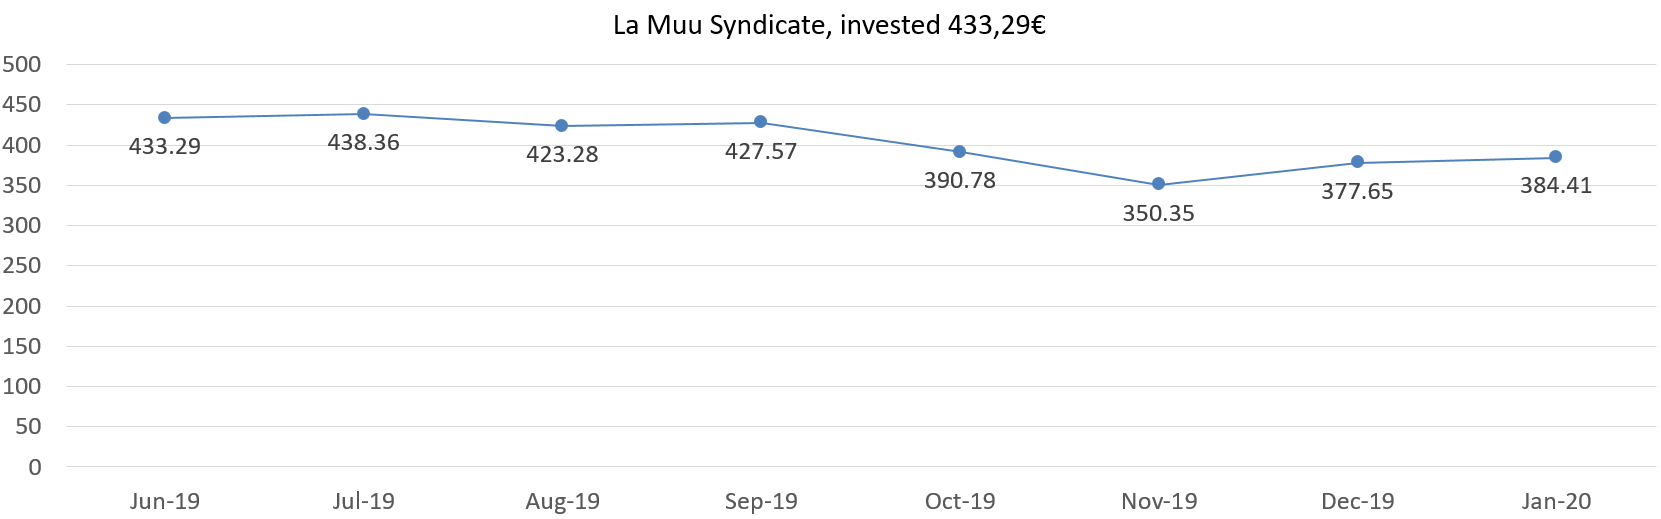 La Muu Syndicate, invested 433,29 euros, january 2020 update